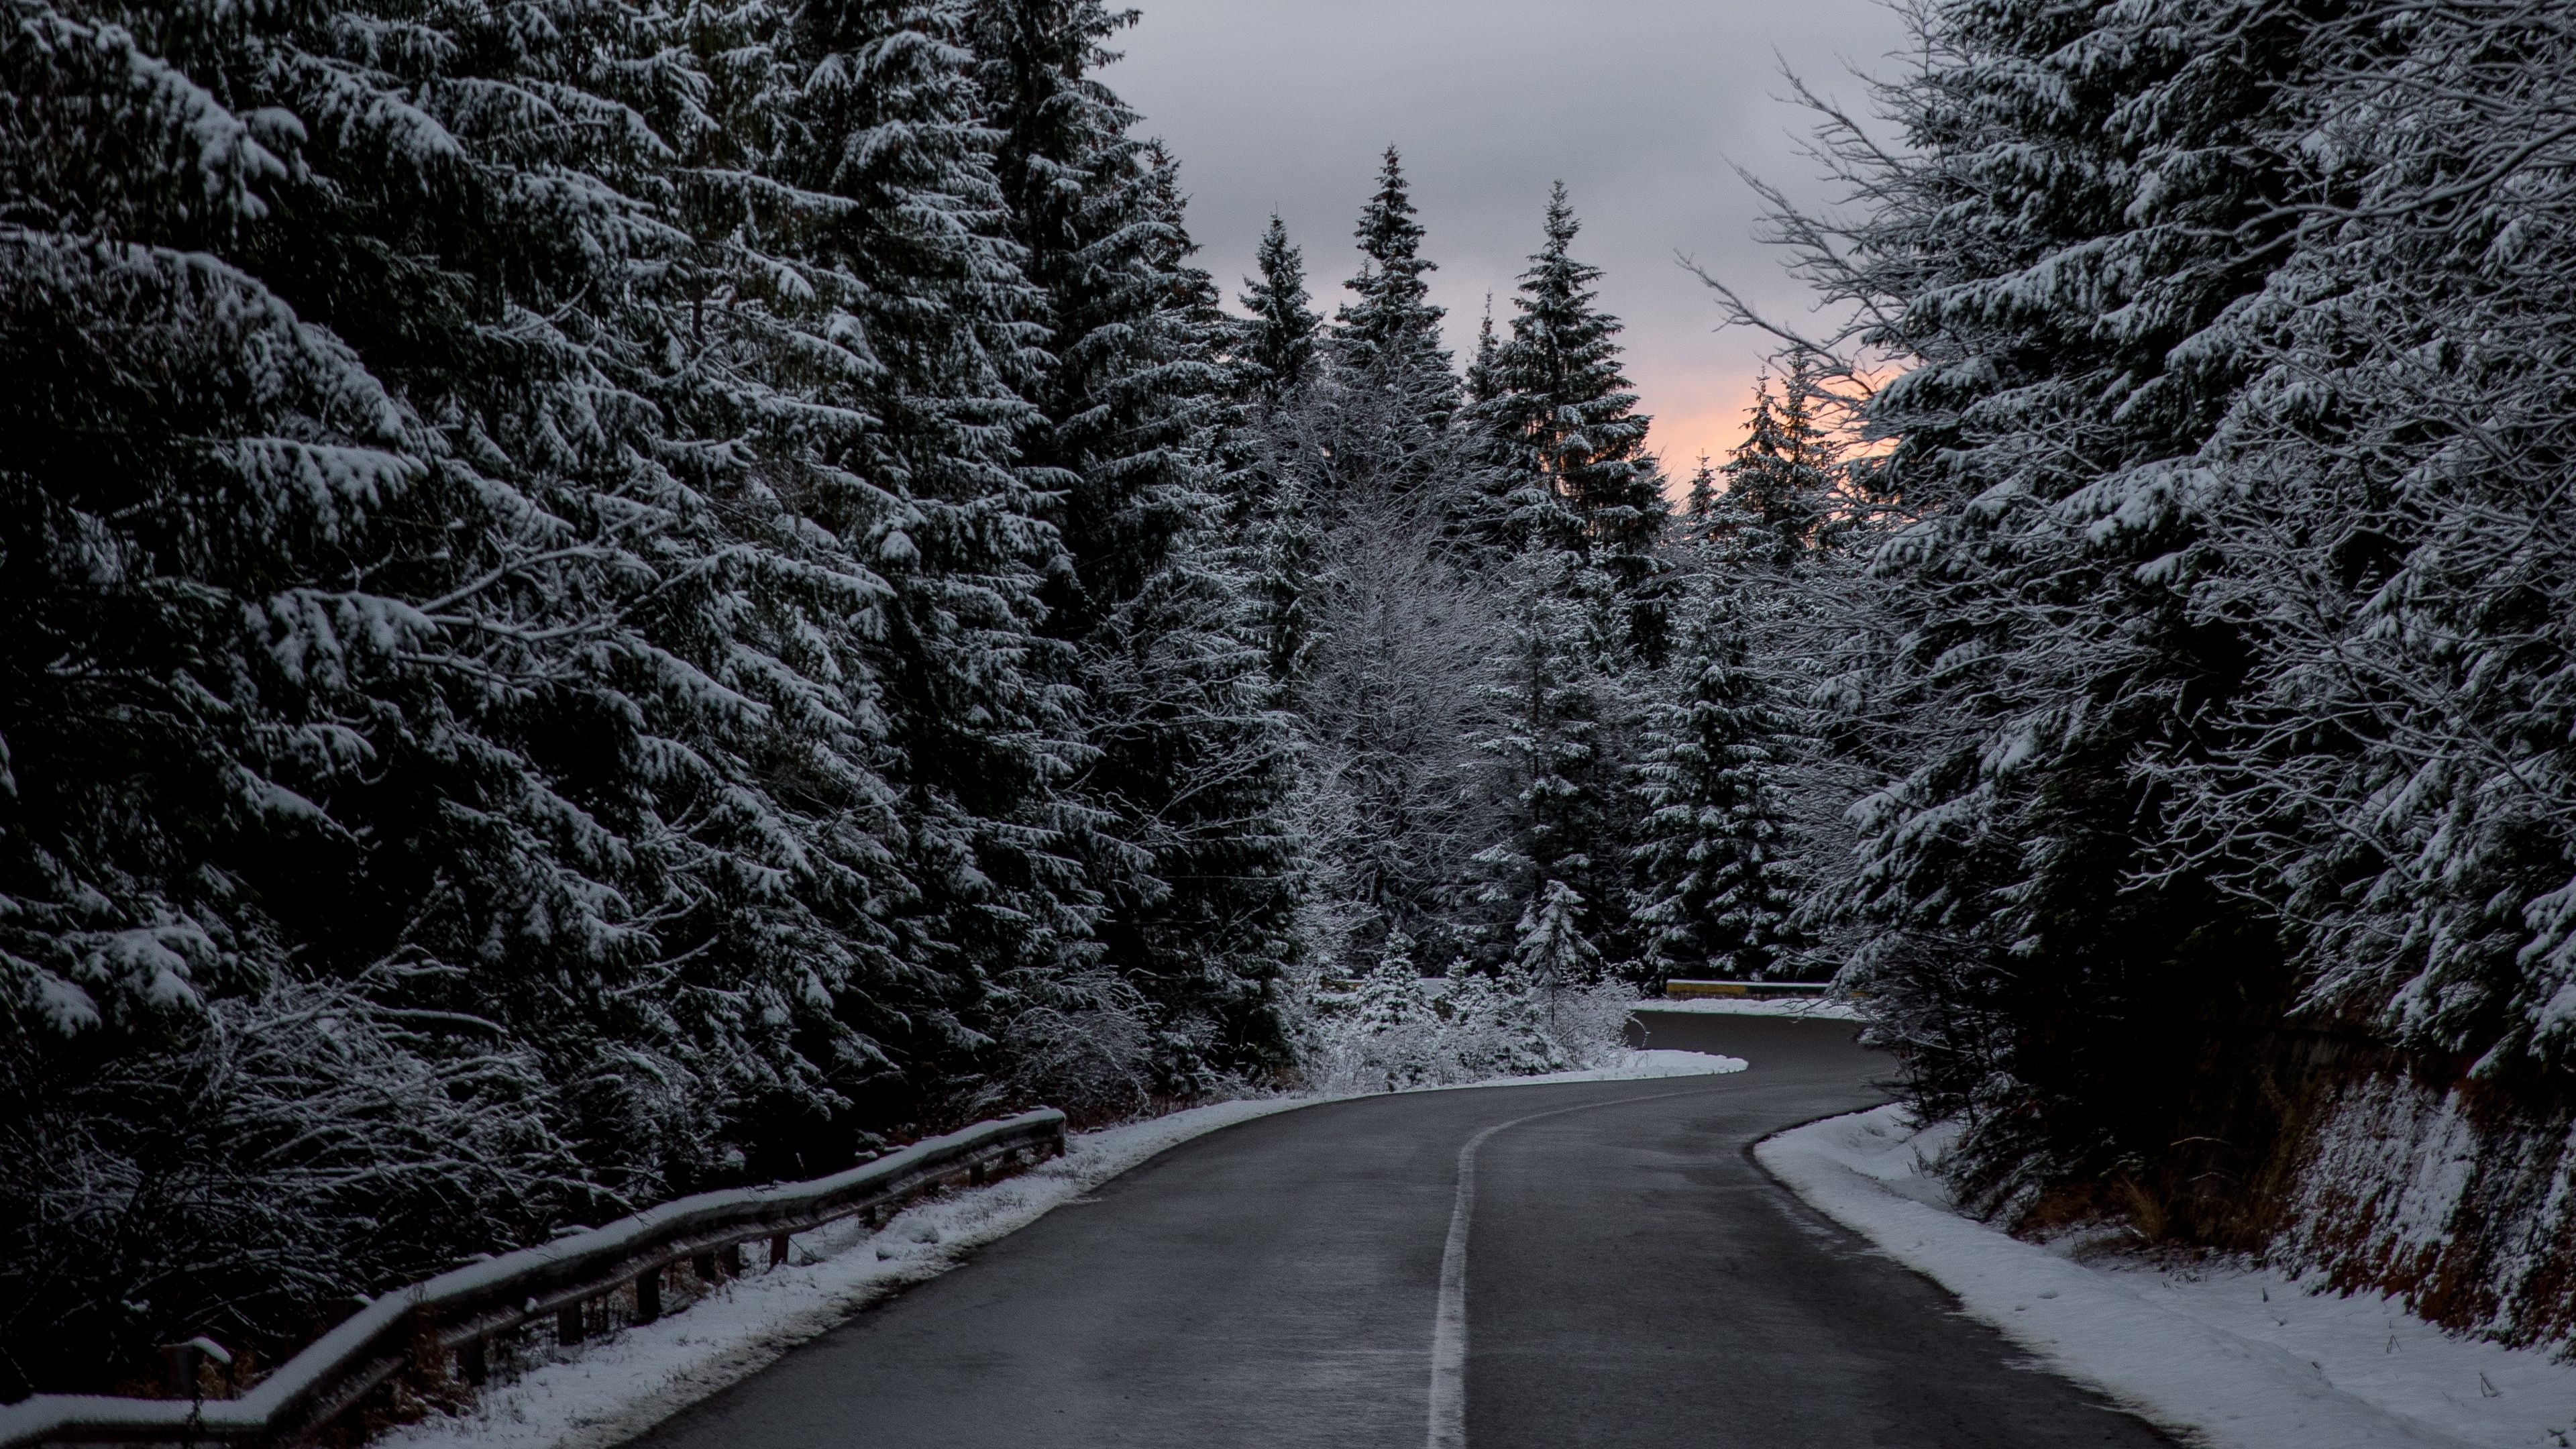 Trees Road Winter Snow 4k Winter Trees Road Nature Wallpaper Background Nature